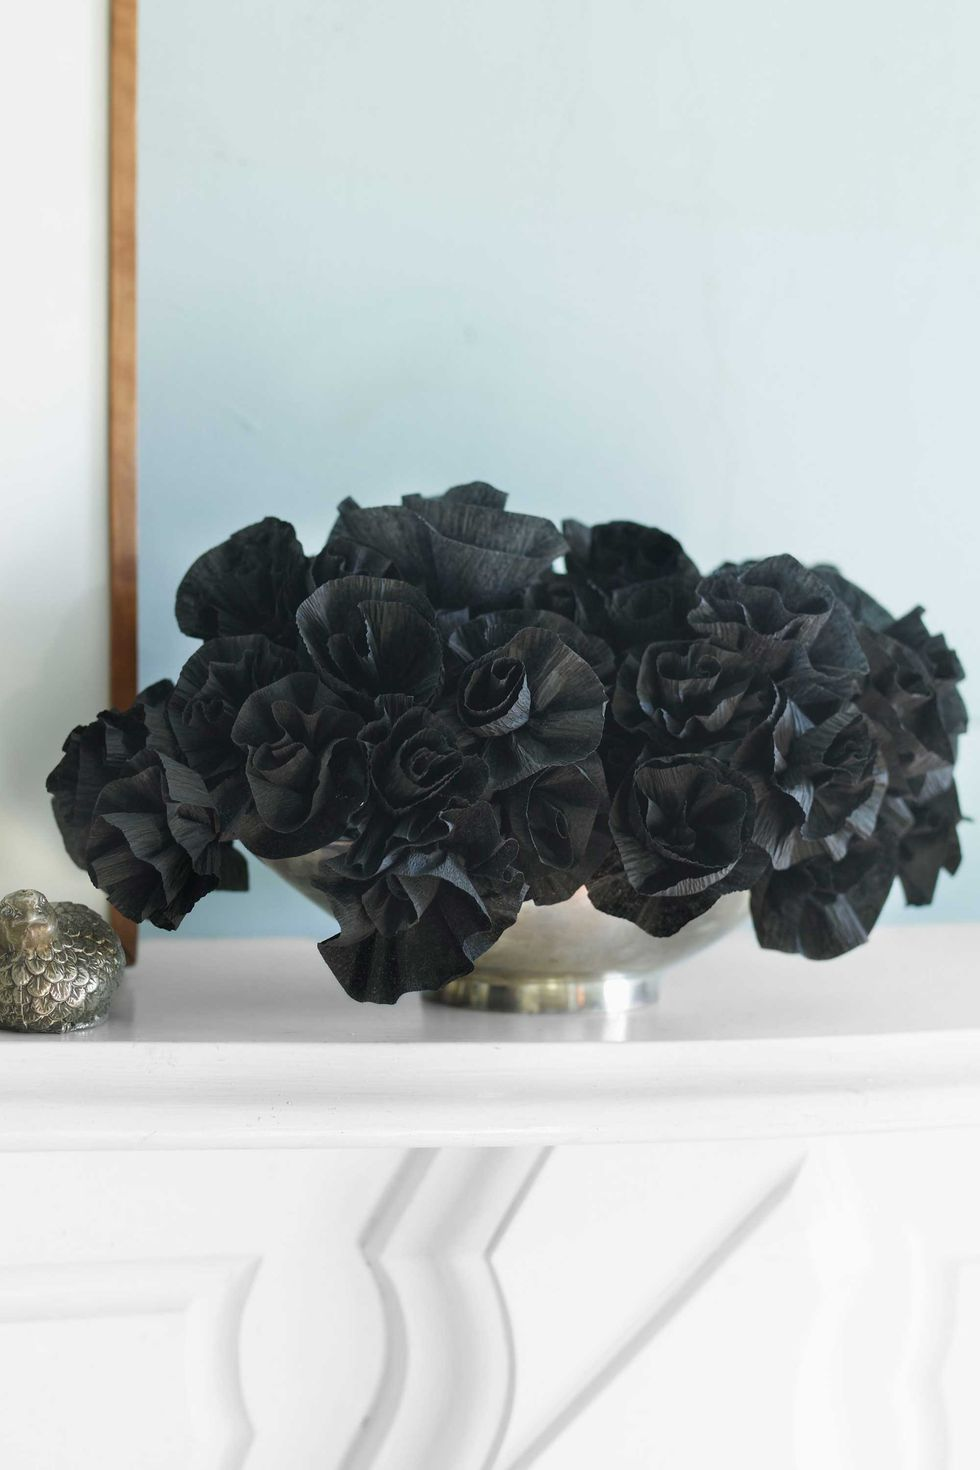 Black Paper Flowers: These 30 DIY Halloween Decorations That Are Wickedly Creative will save you money and allow your creativity to flourish